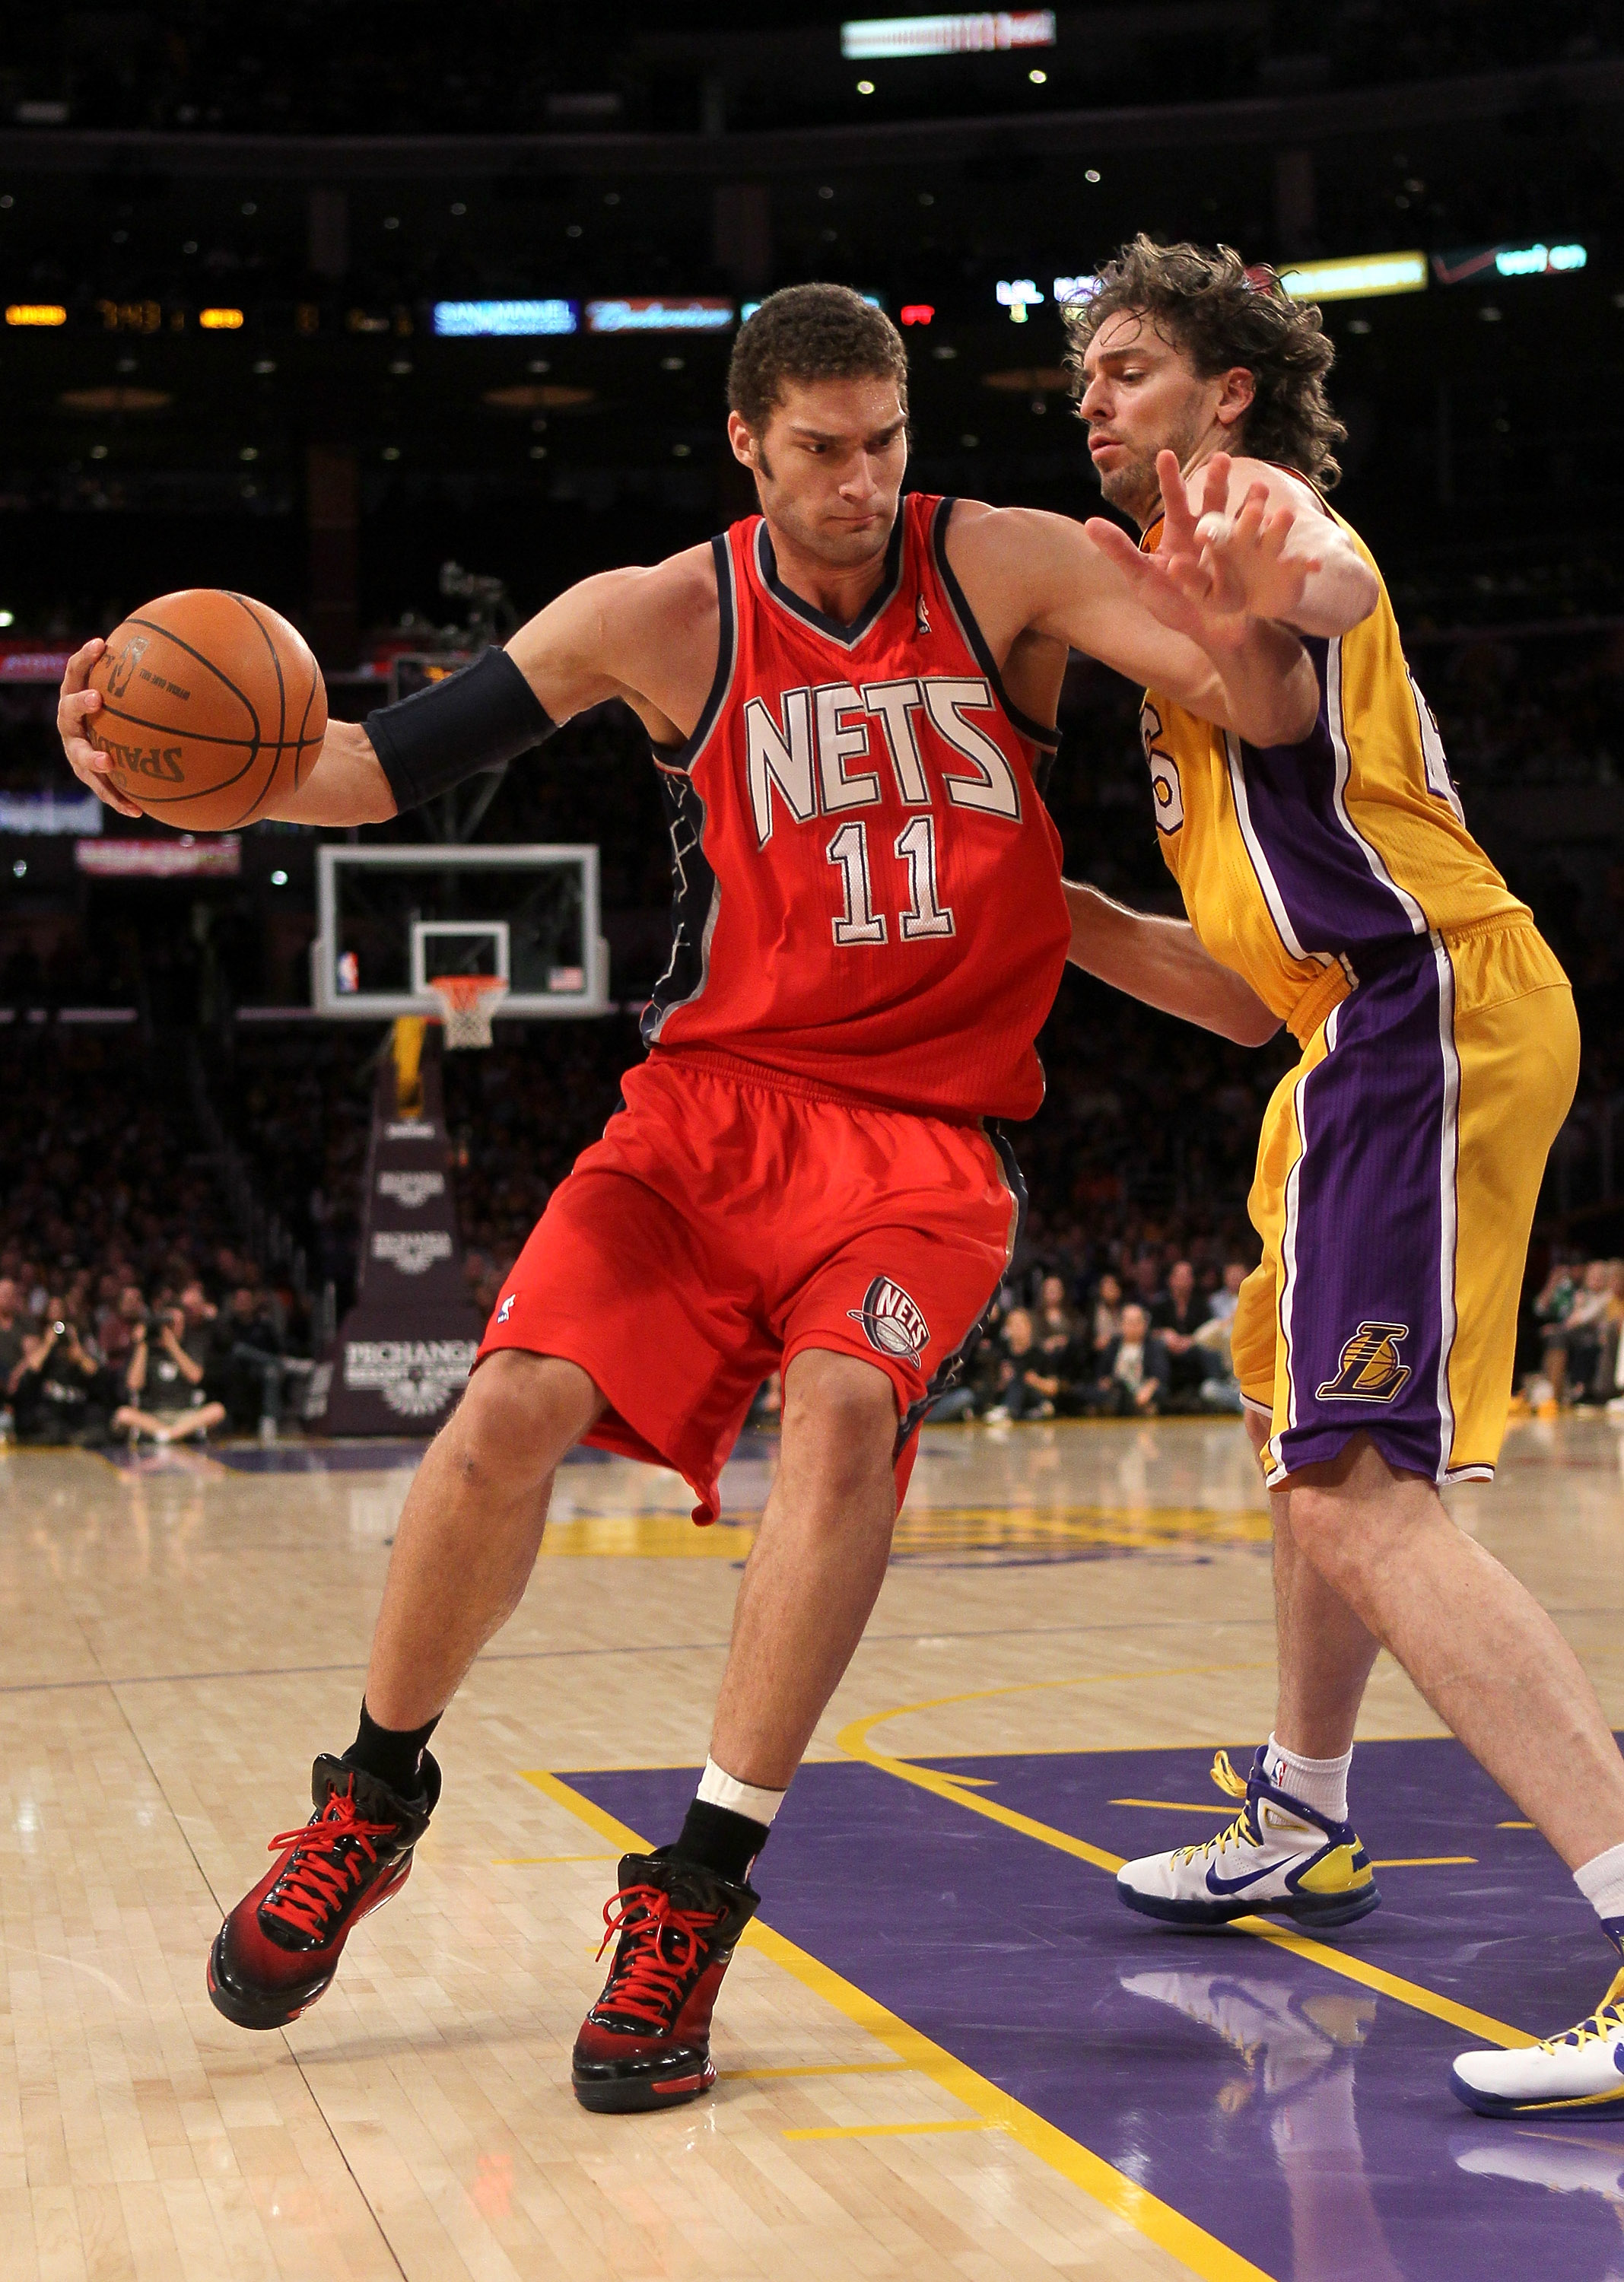 LOS ANGELES, CA - JANUARY 14:  Brook Lopez #11 of the New Jersey Nets drives against Pau Gasol #16 of the Los Angeles Lakers at Staples Center on January 14, 2011 in Los Angeles, California. The Lakers won 100-88.  NOTE TO USER: User expressly acknowledge